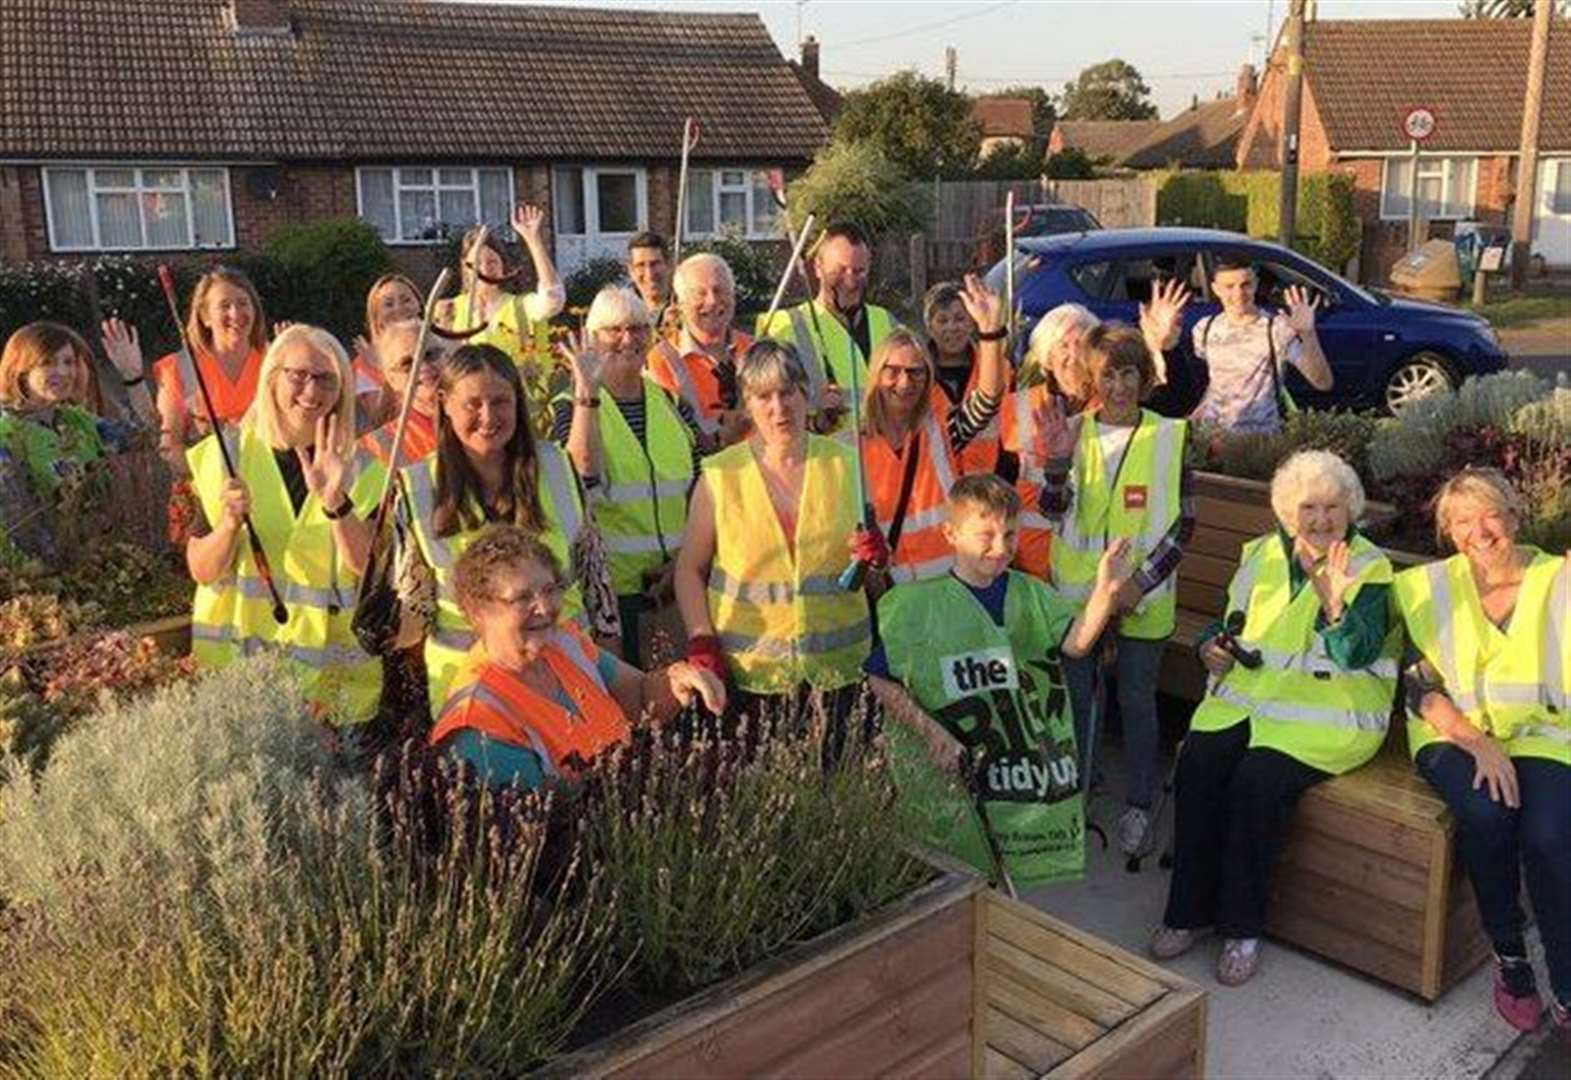 Bottesford residents rally together at community litter pick